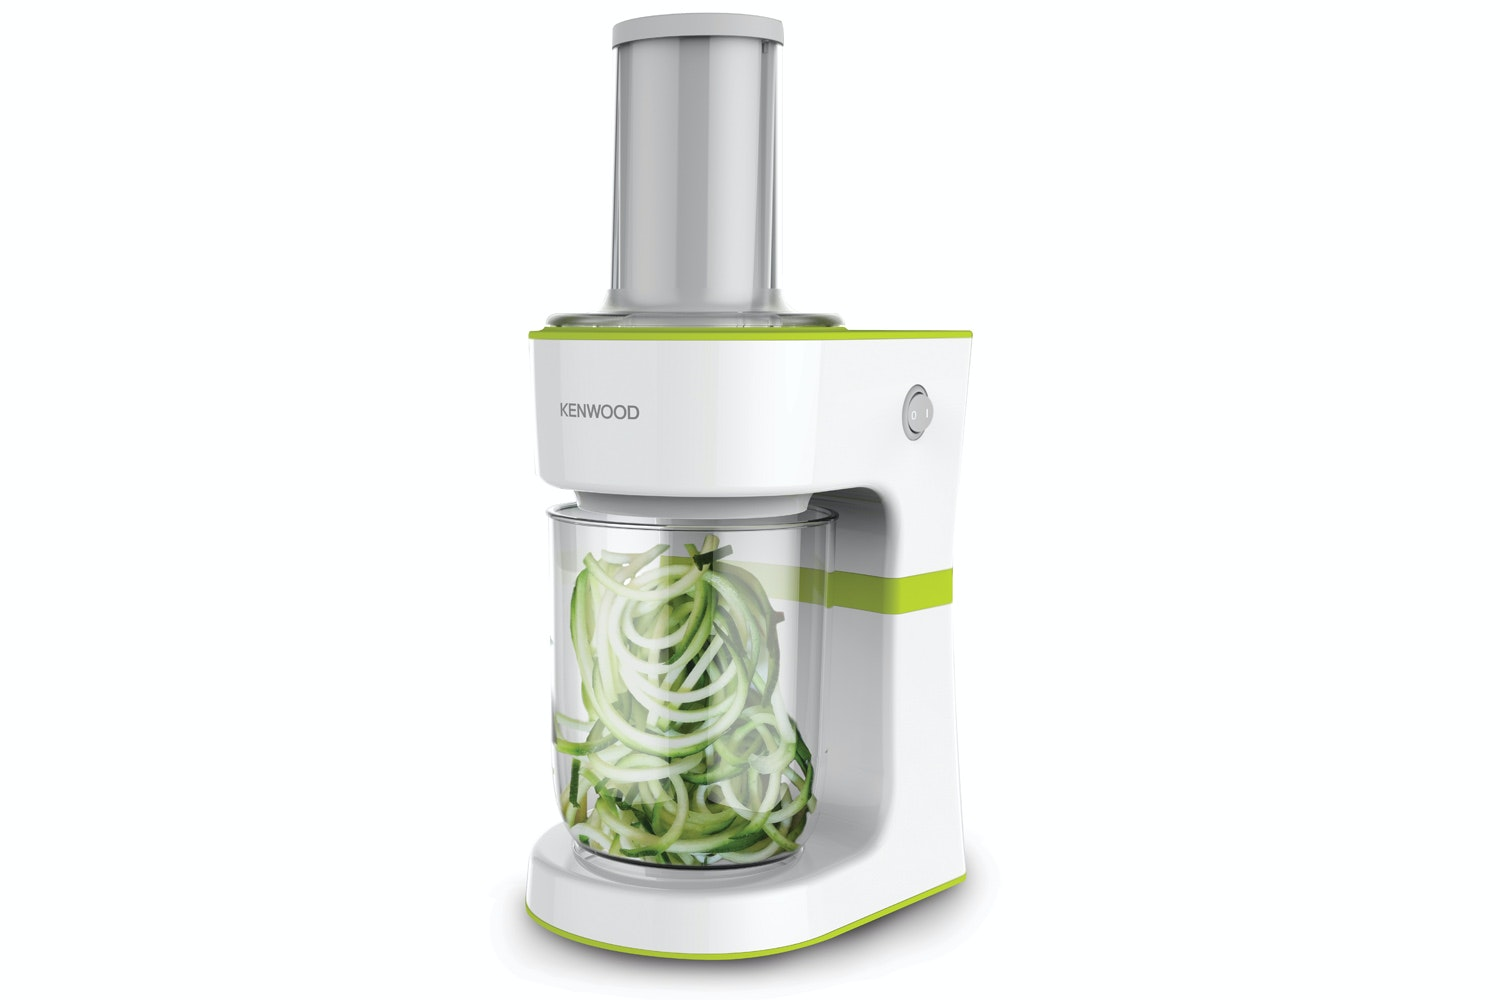 Kenwood Electric Spiralizer | FGP200WG